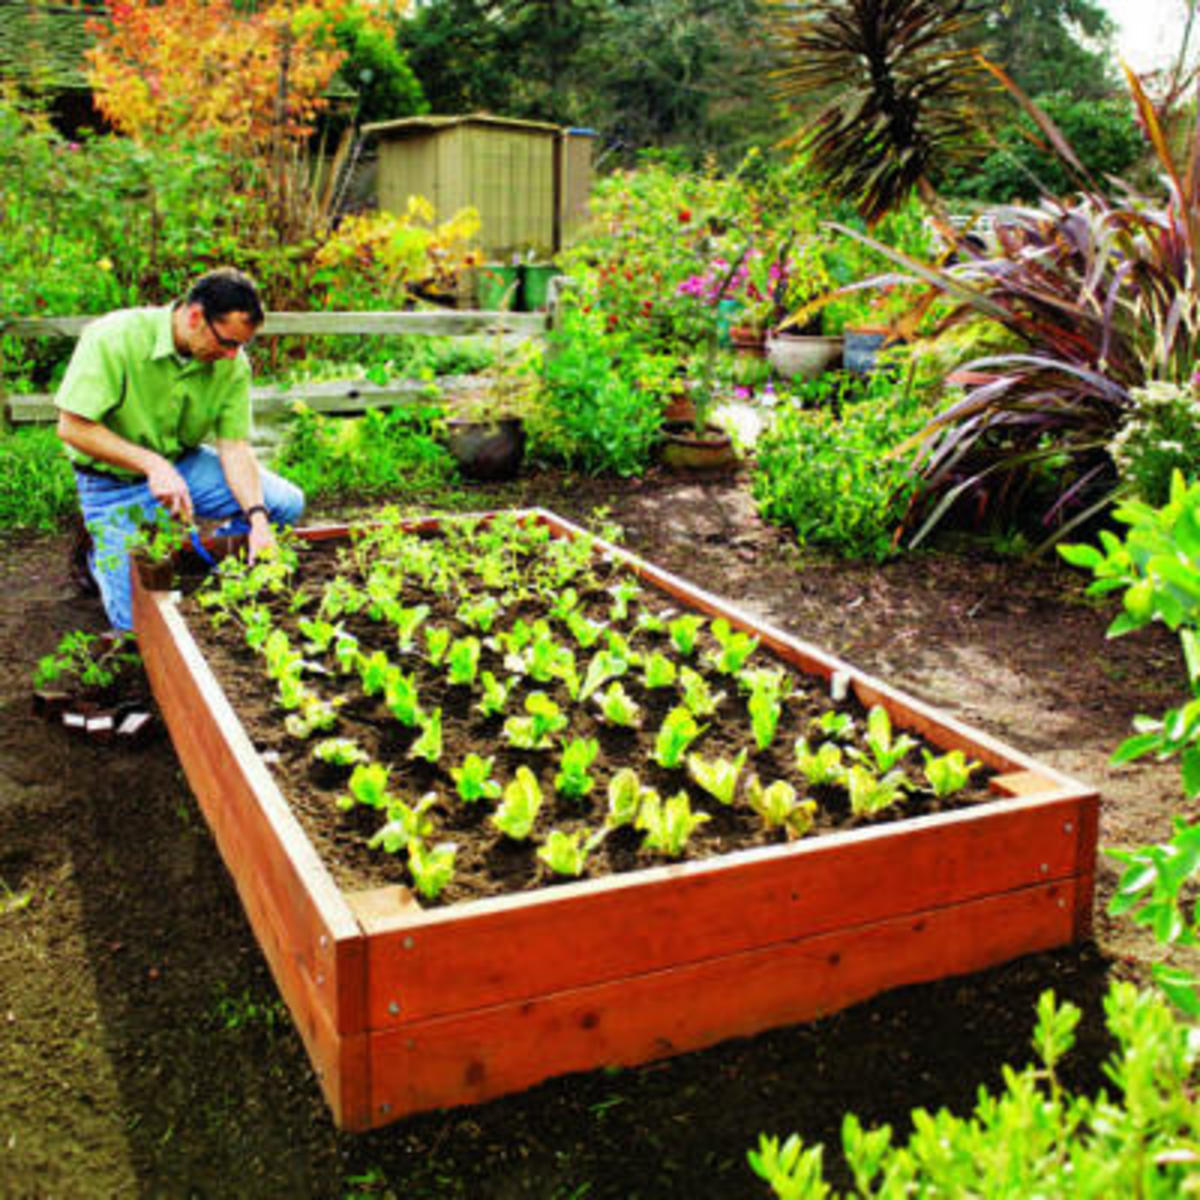 Raised bed gardening allows for easy access to what you grow and it helps in heat retention and weed control. Use some mulching and you have a real winning combo.